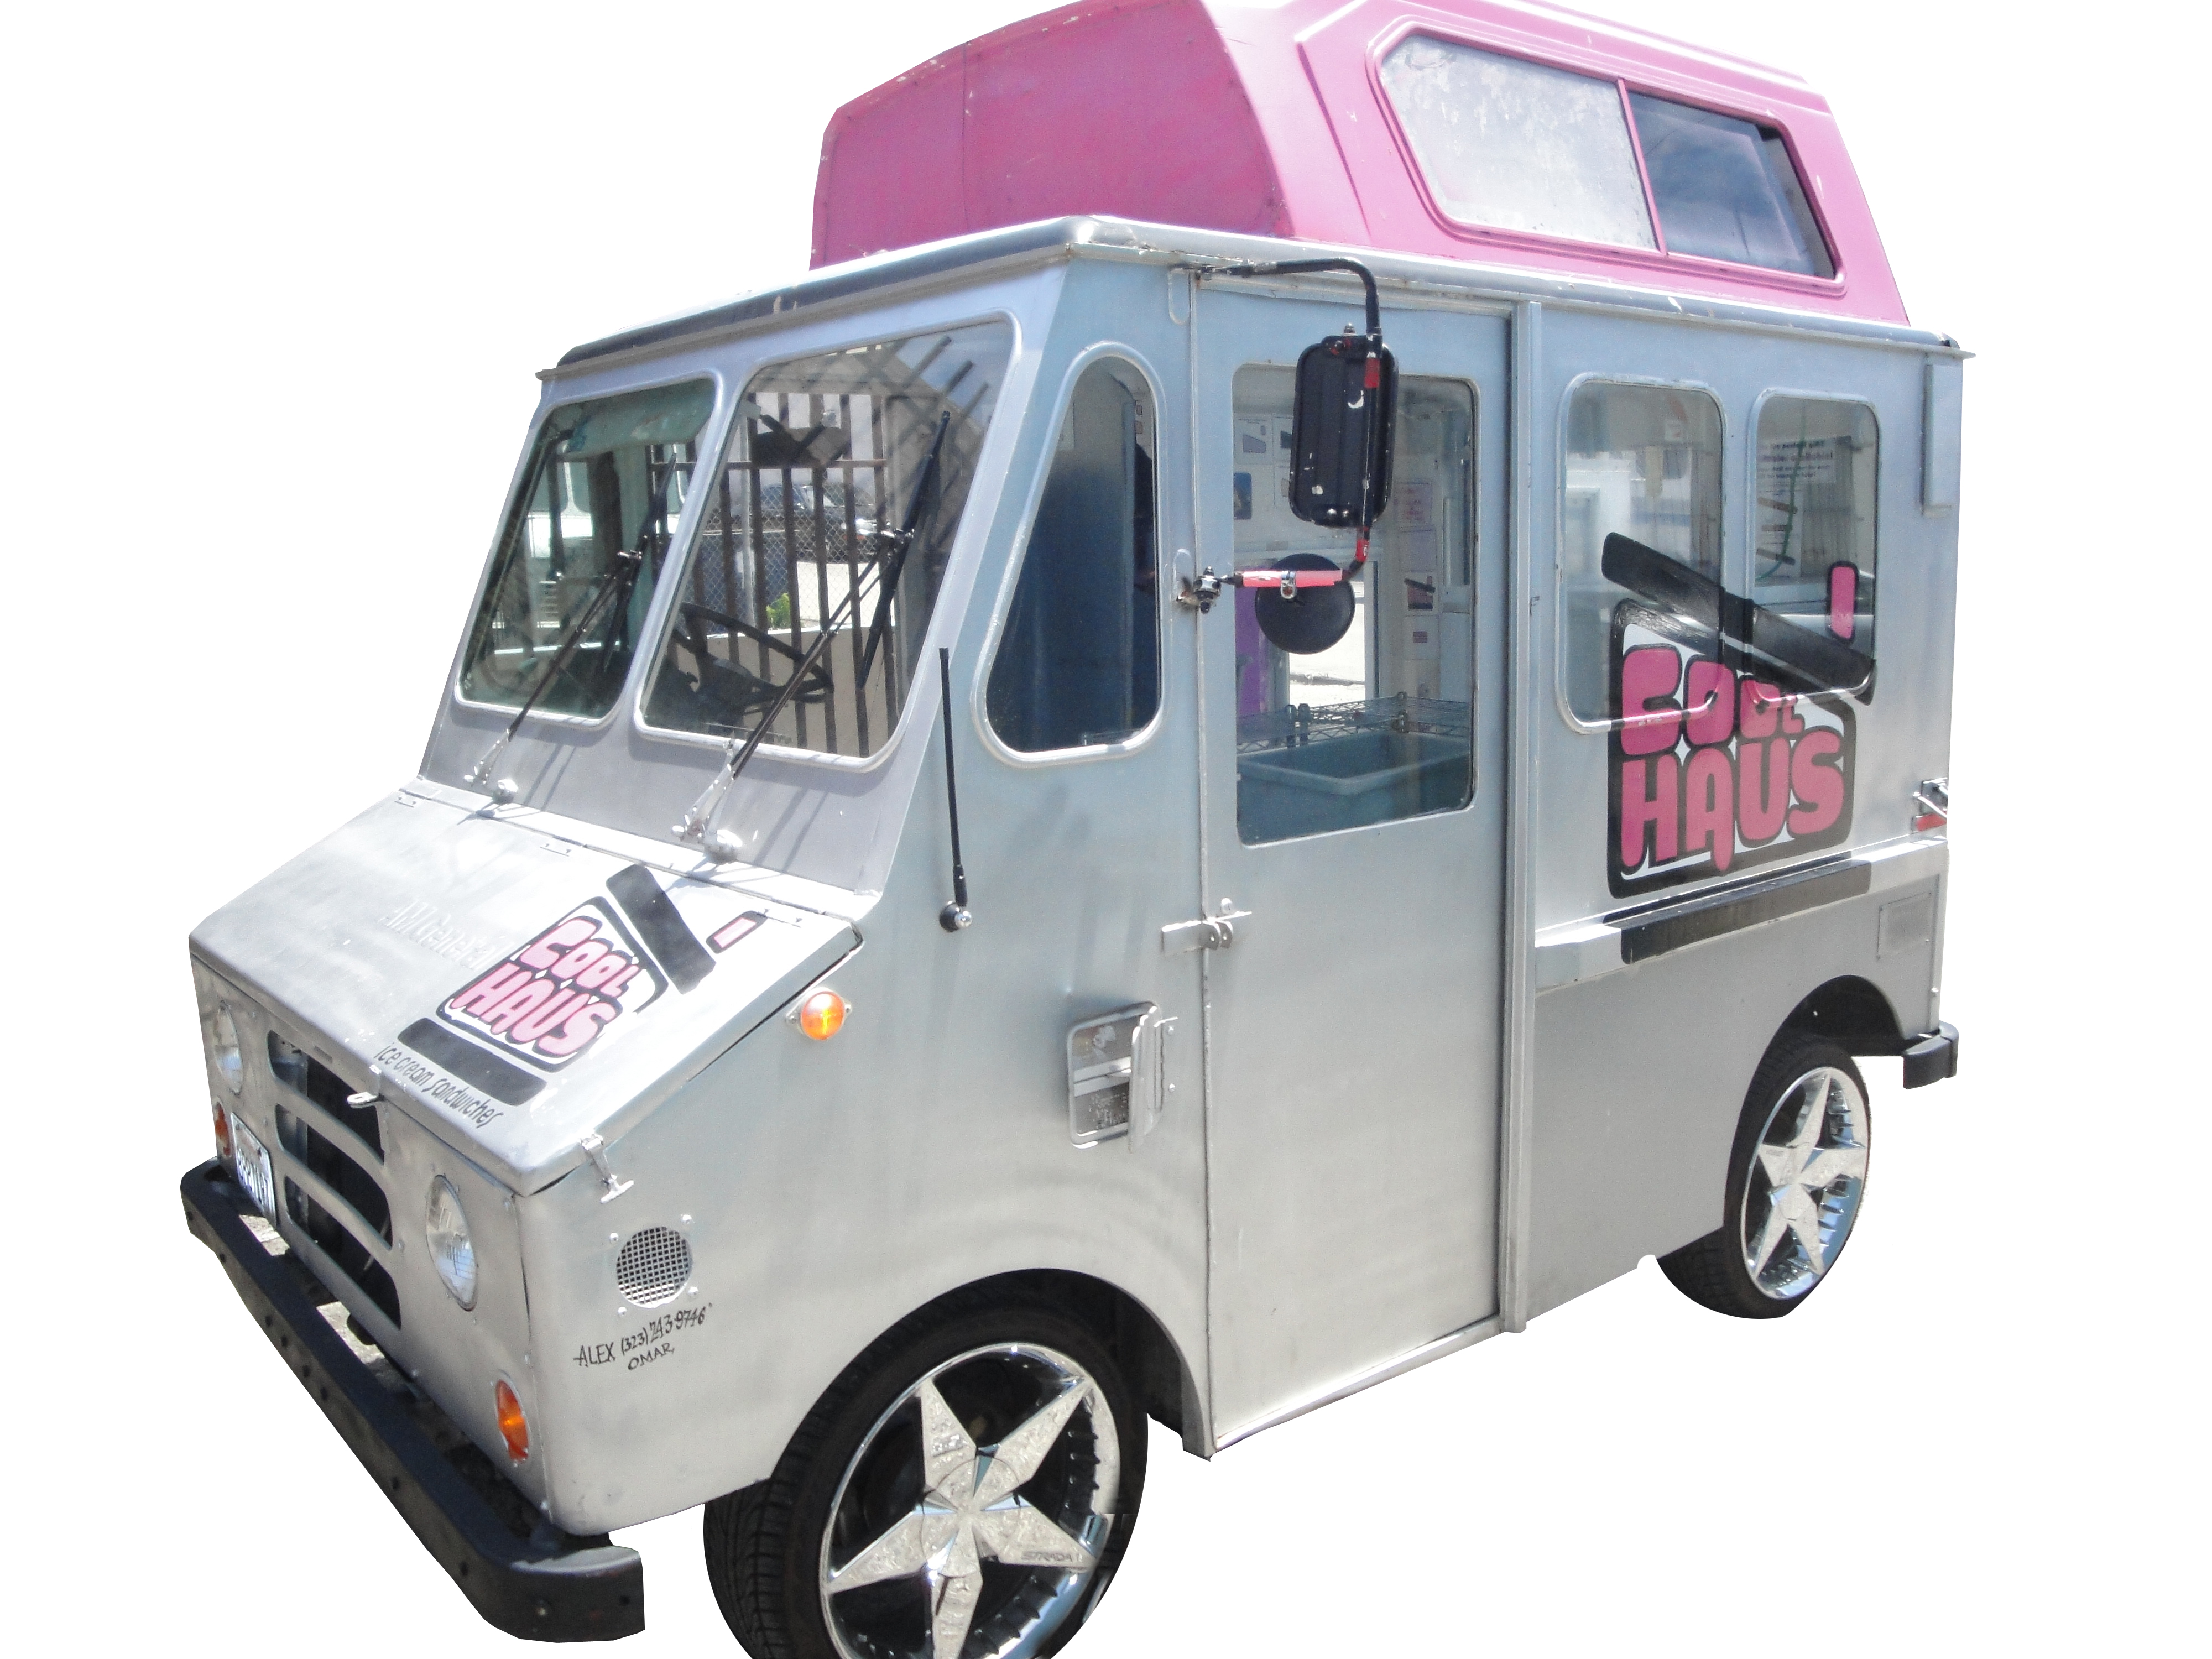 The Cool Haus Small Truck by Kareem Carts Manufacturing Company